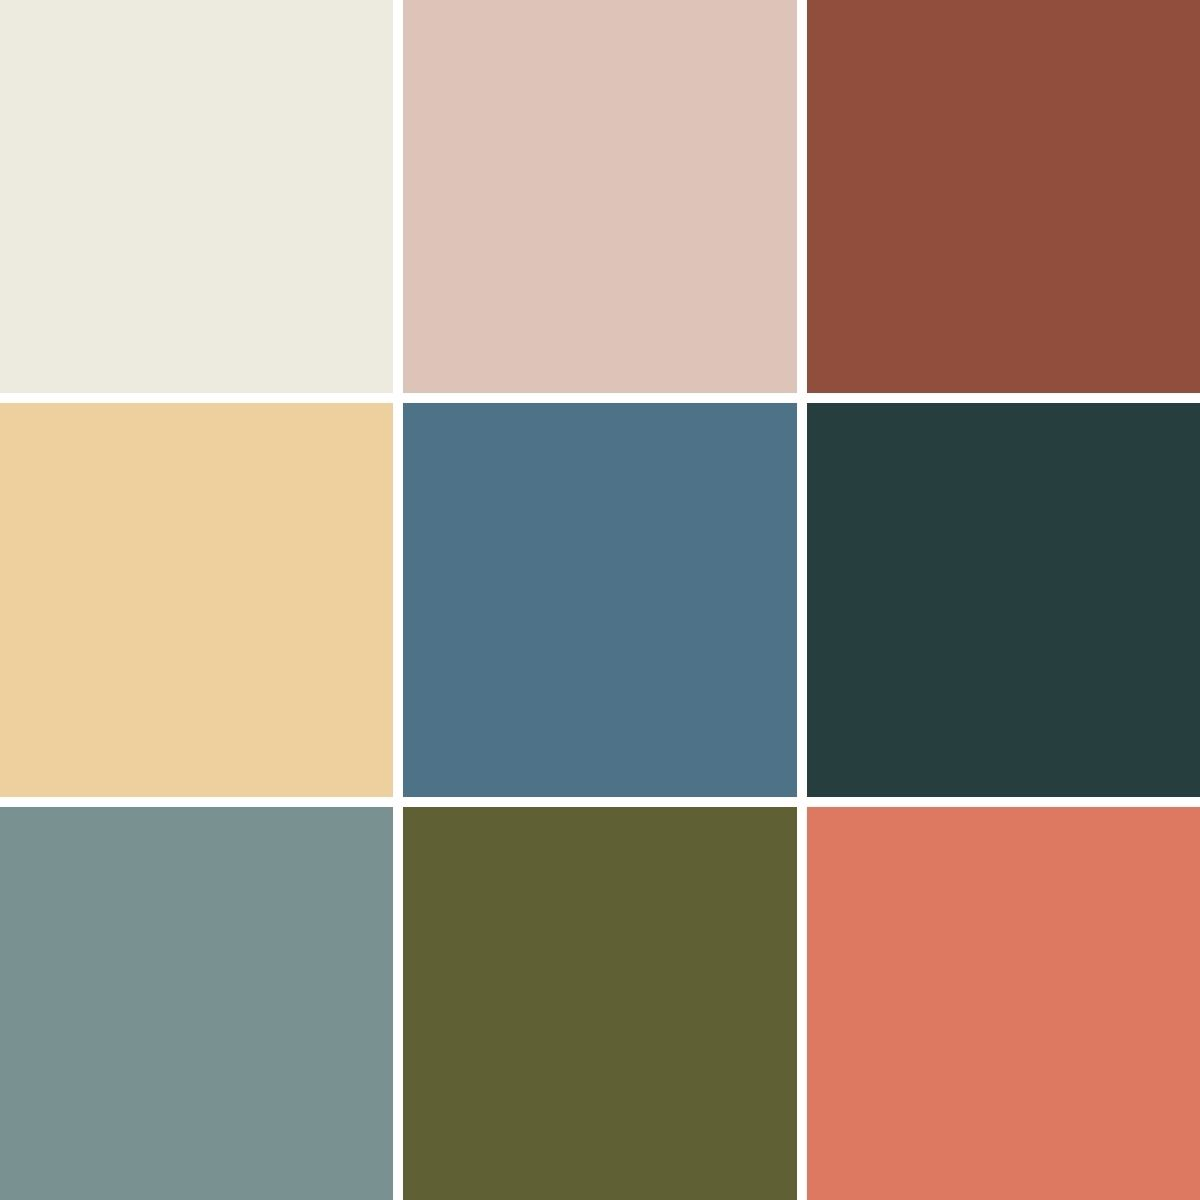 sherwin-williams-color-forecast-2022-nordroom